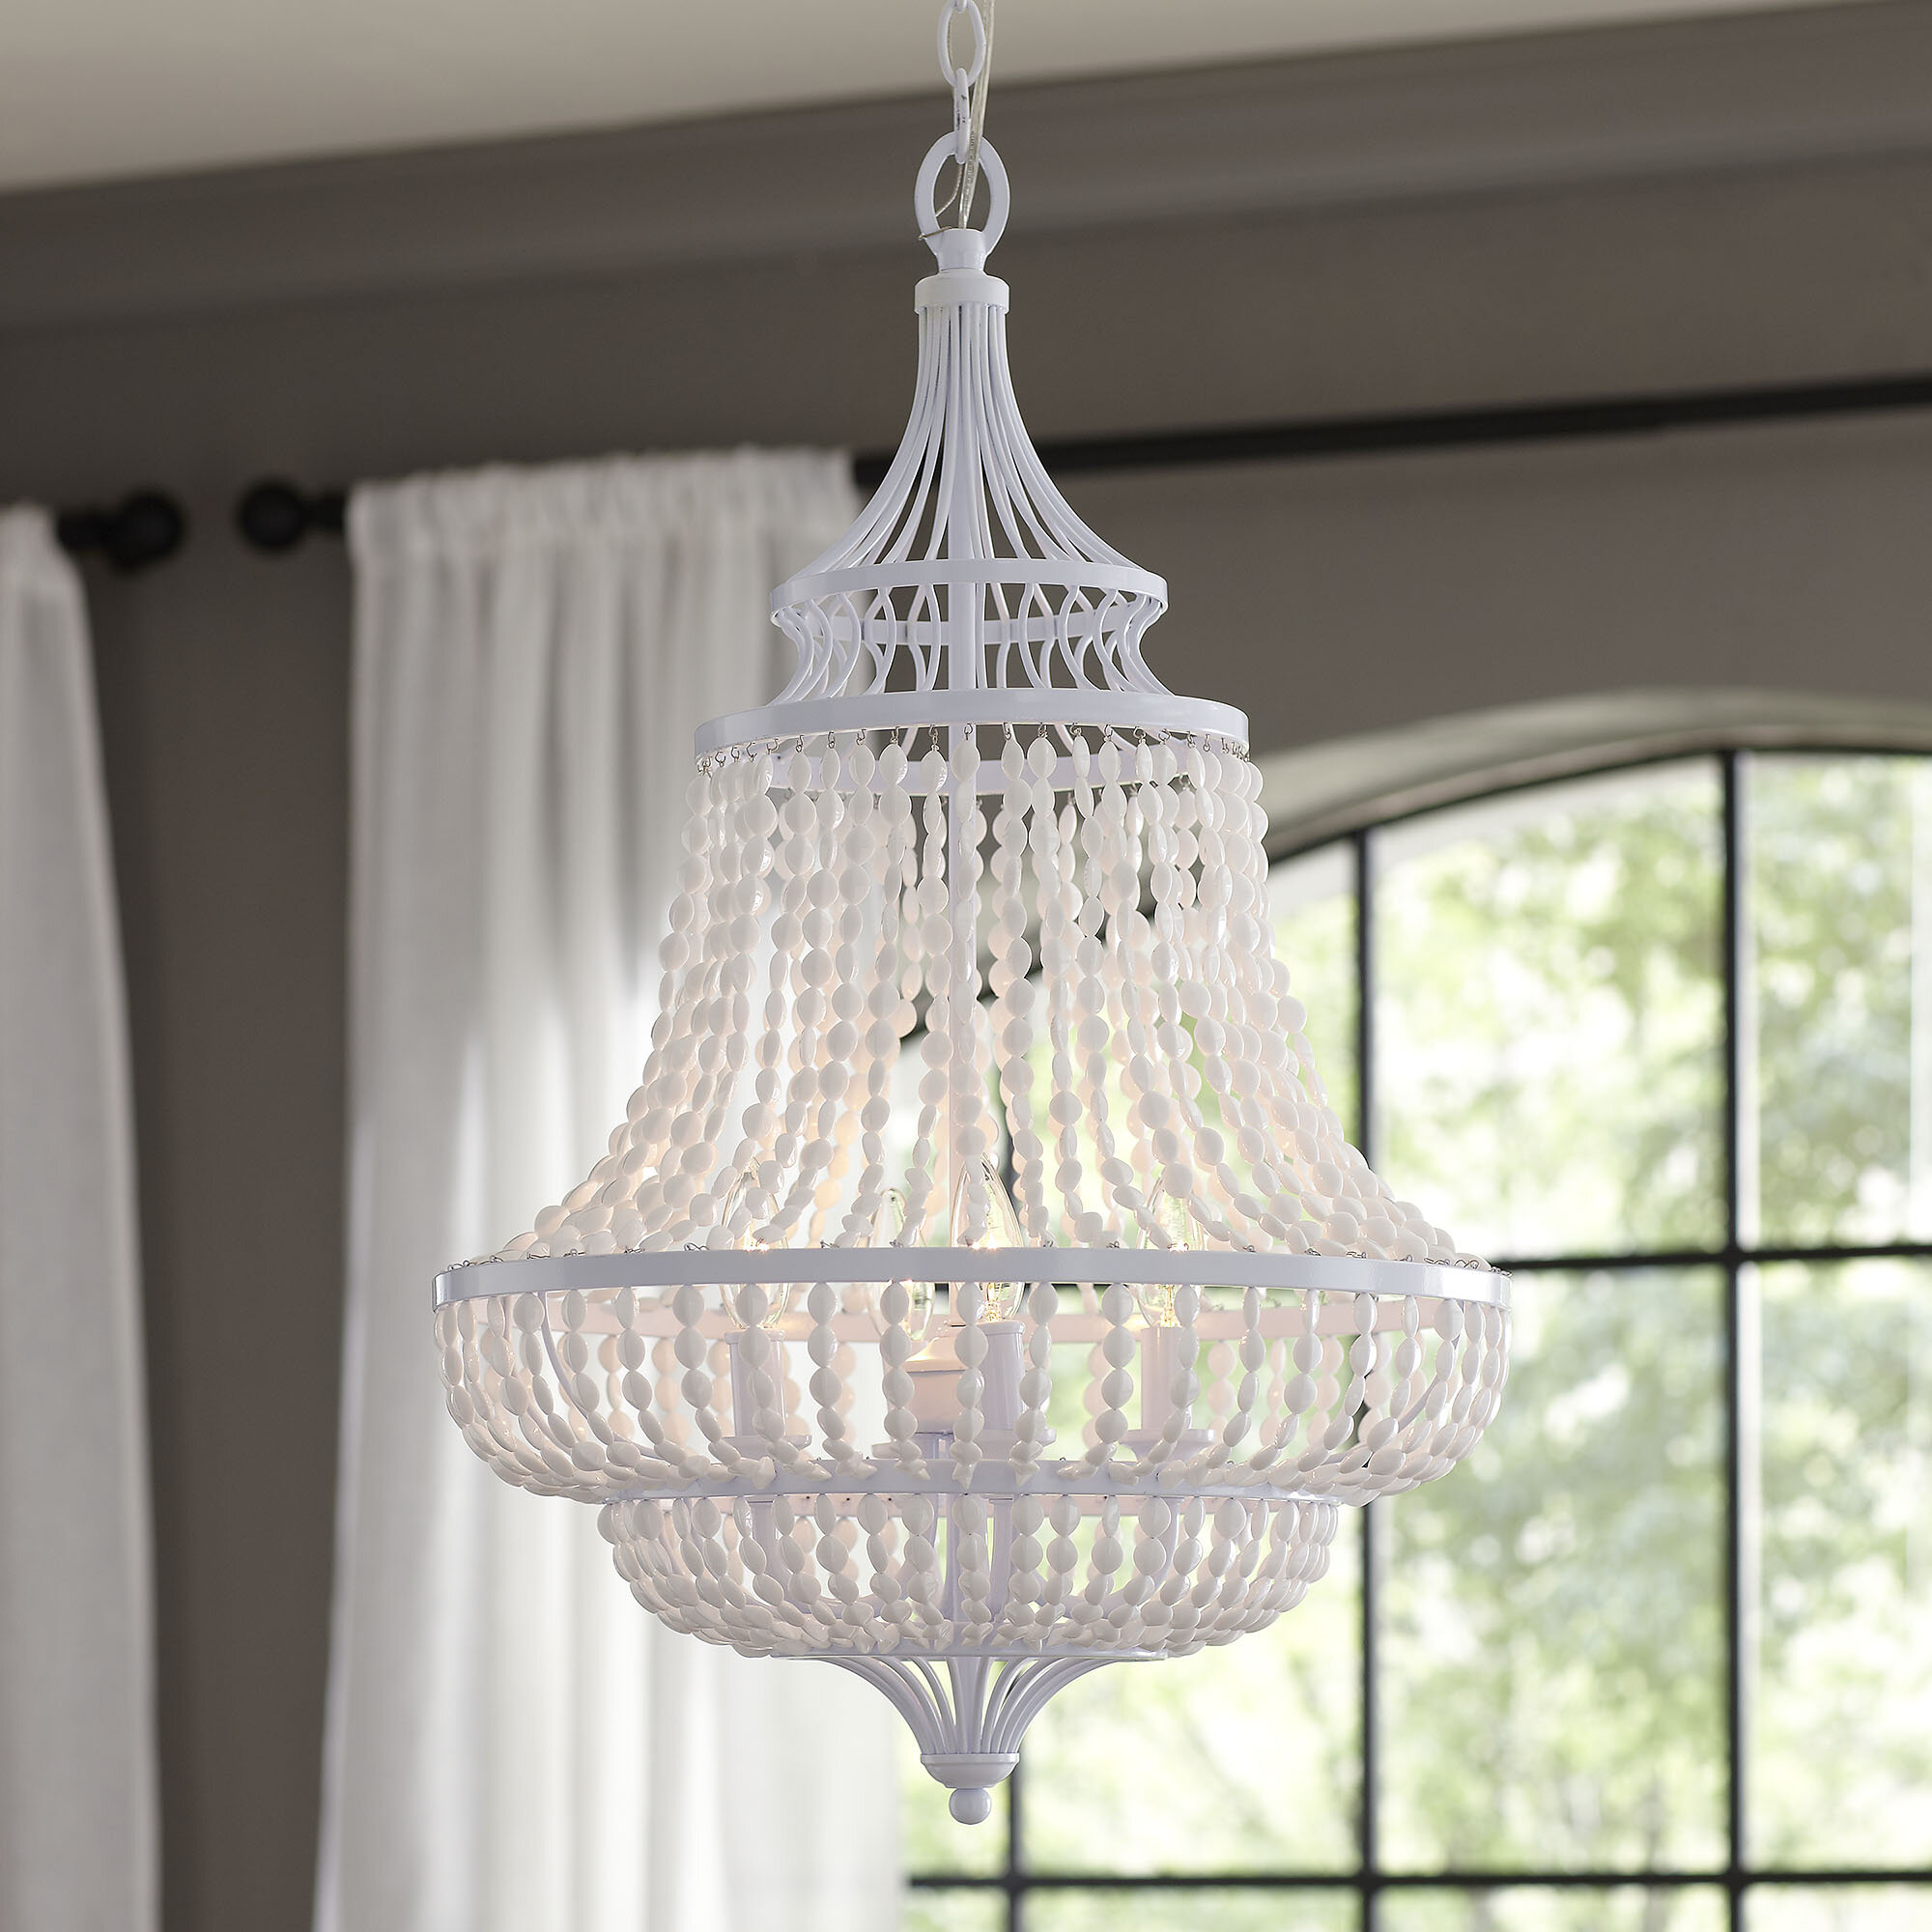 dar acrylic crystal glass products chrome polished katie lighting buy light chandelier